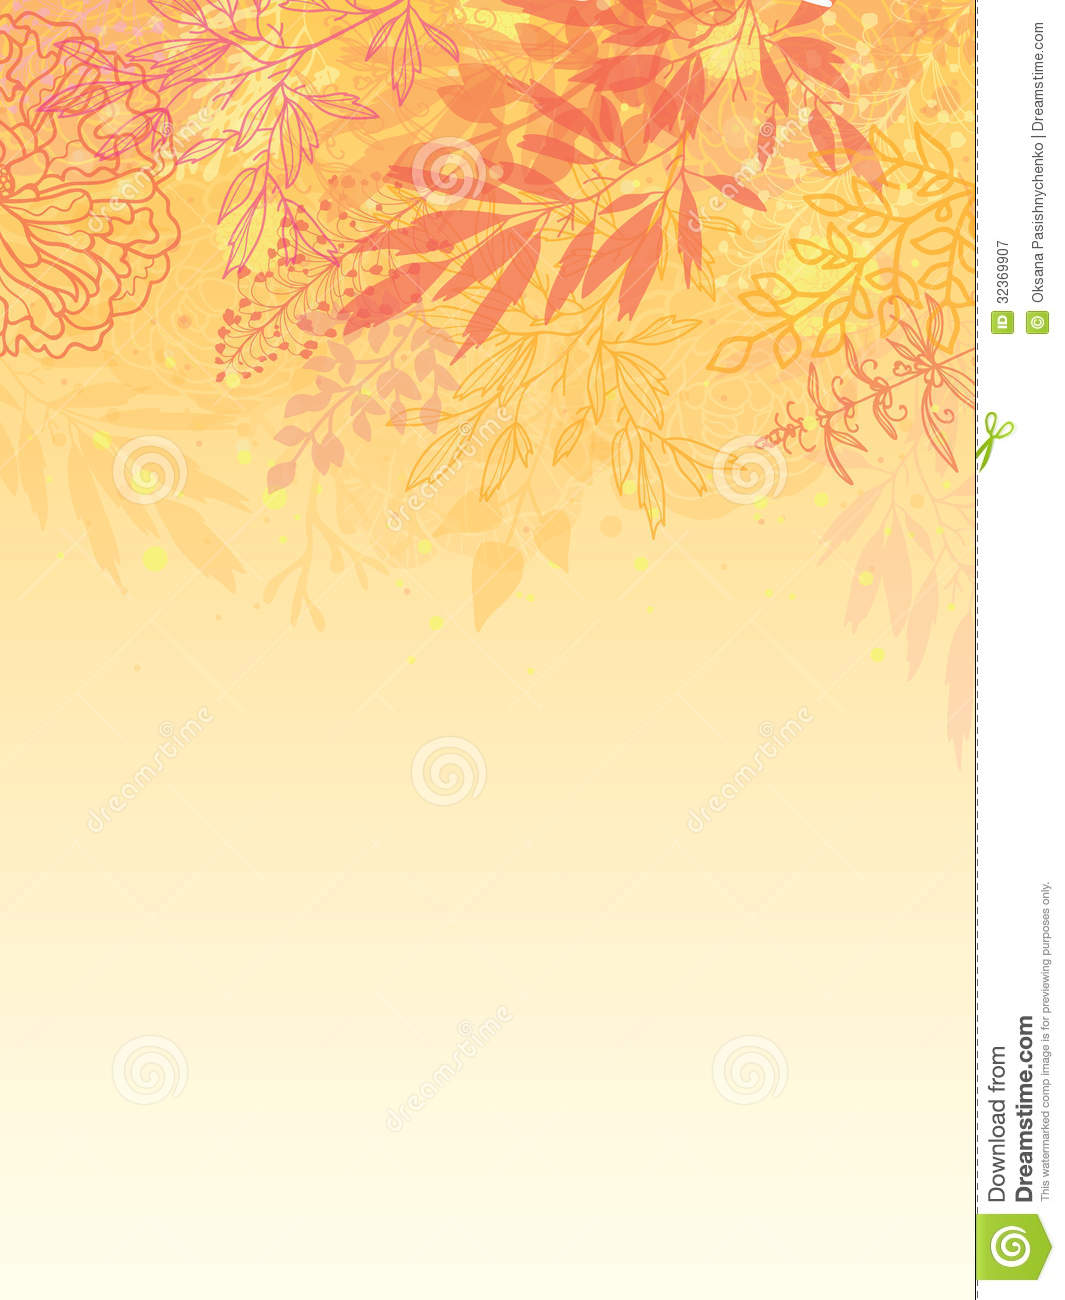 Fall Leaves Wallpaper Border Glowing Fall Plants Vertical Background Stock Vector